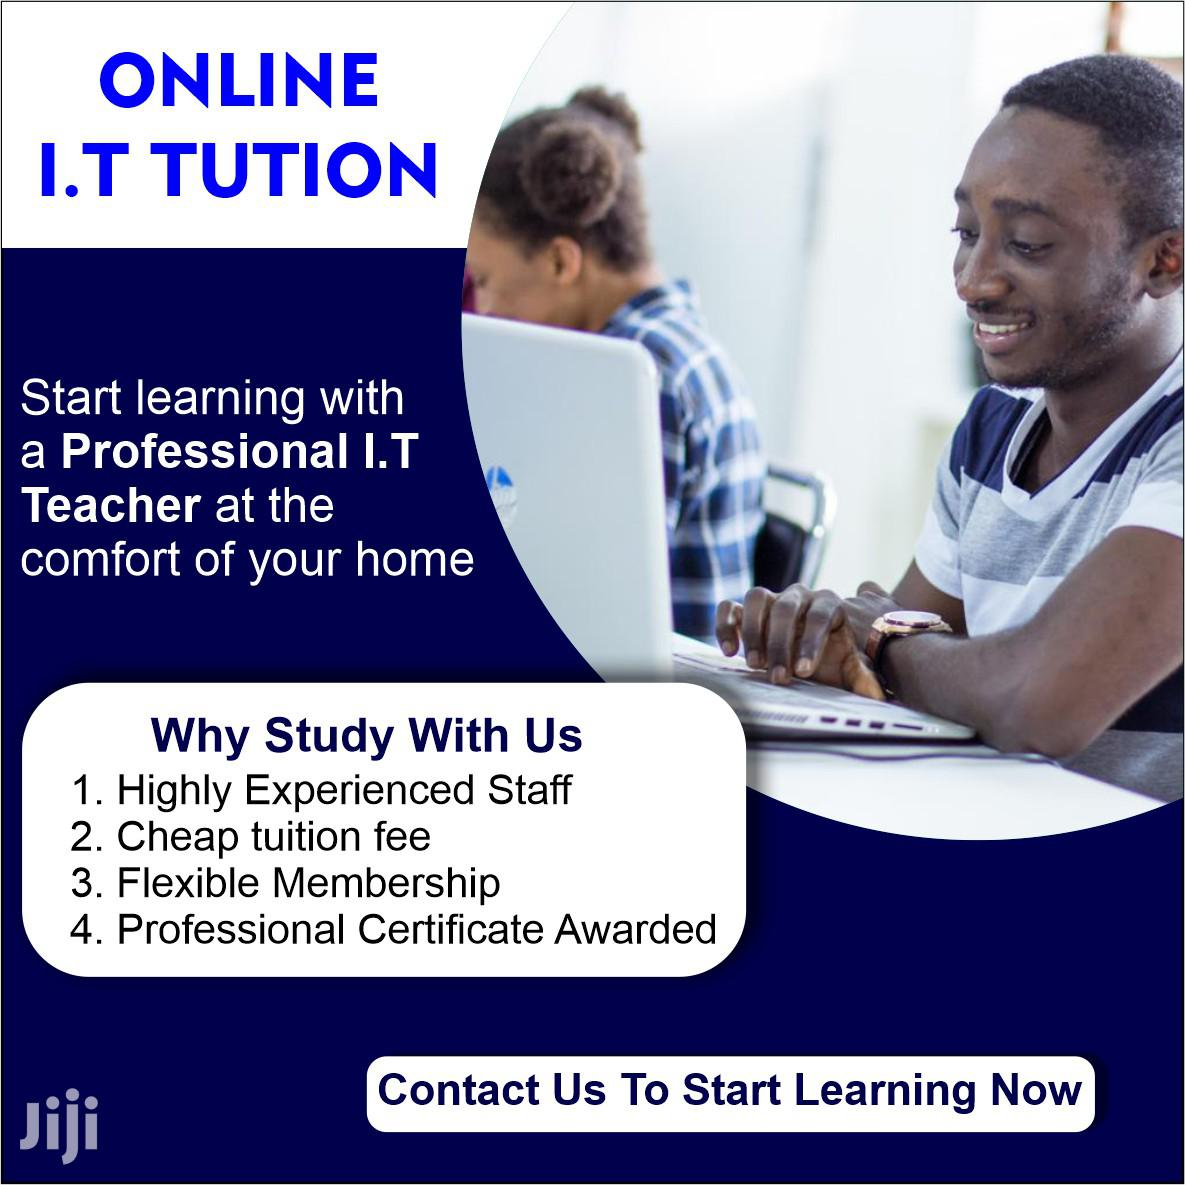 Online IT Tuition